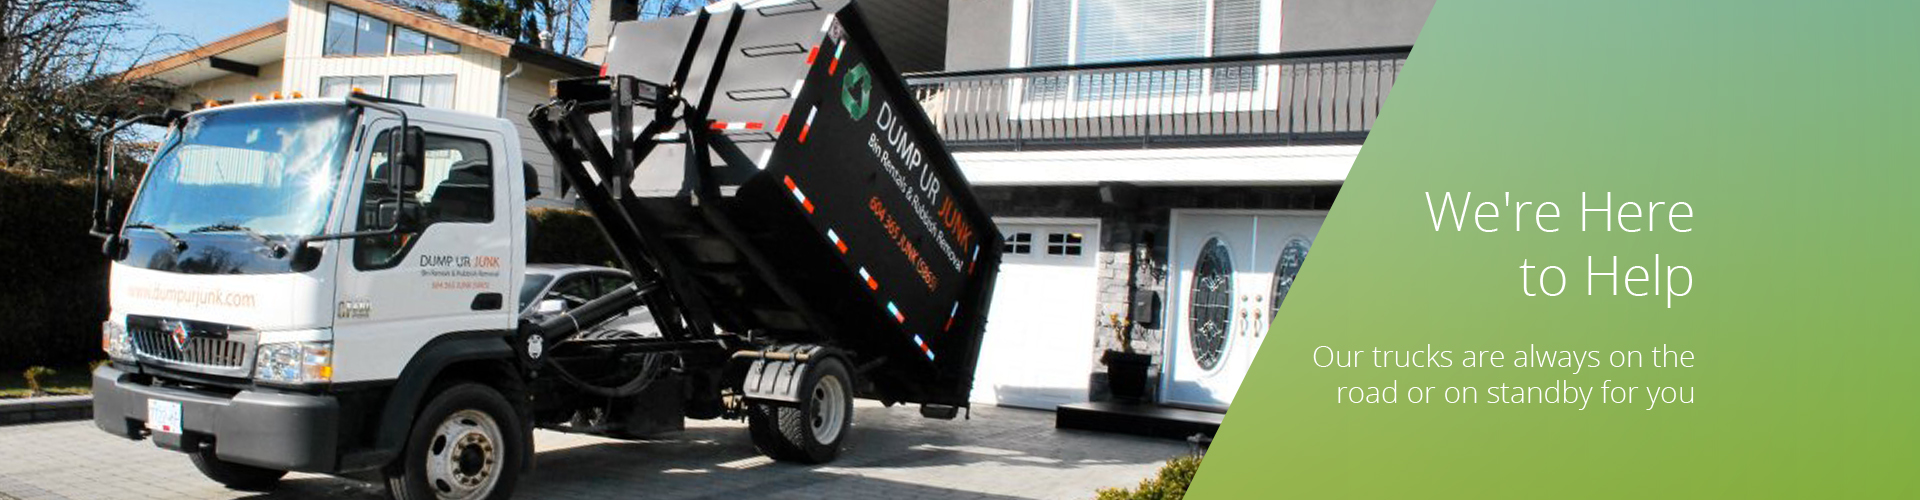 Dump Ur Junk - We are here 24/7